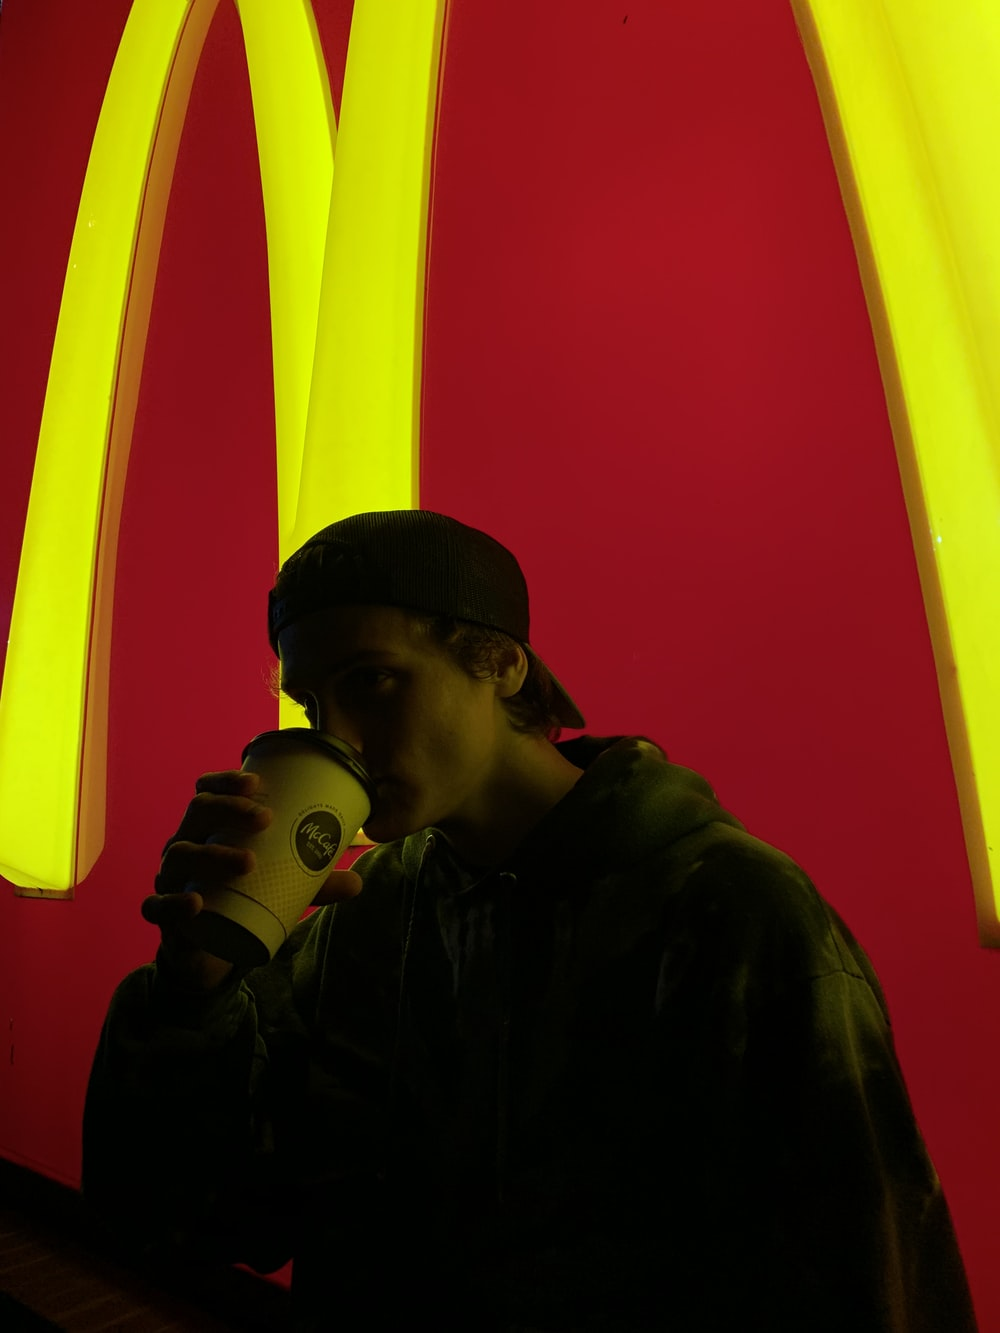 man drinking on disposable cup